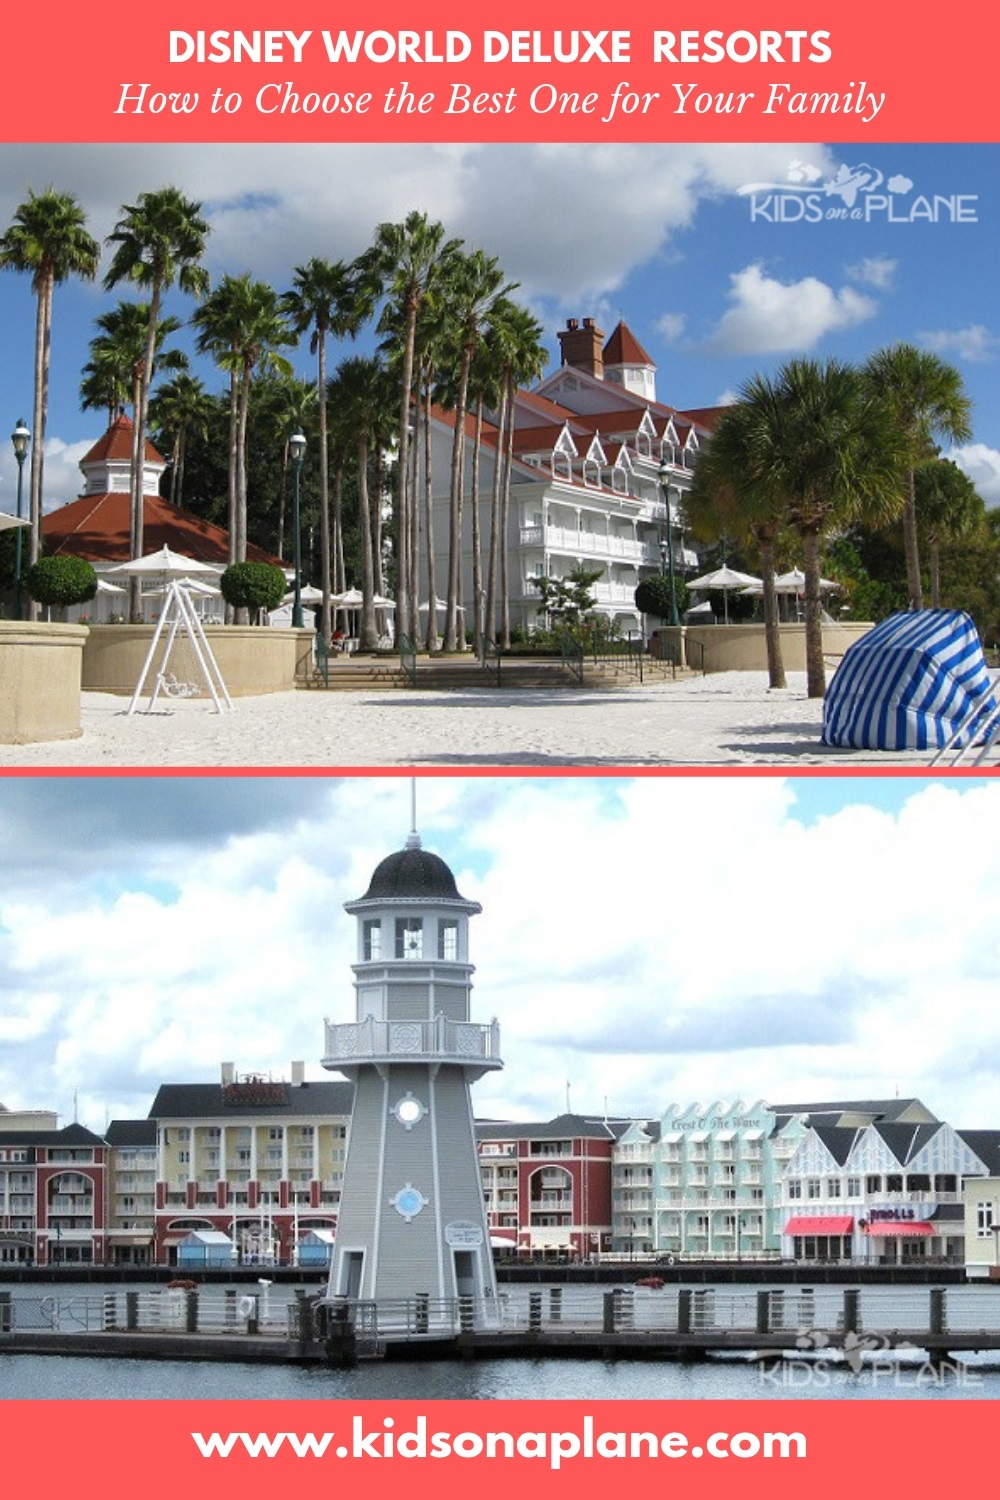 Disney Deluxe and Deluxe Villa Resort Hotels - How to Choose a Disney World Resort Hotel for Your Family